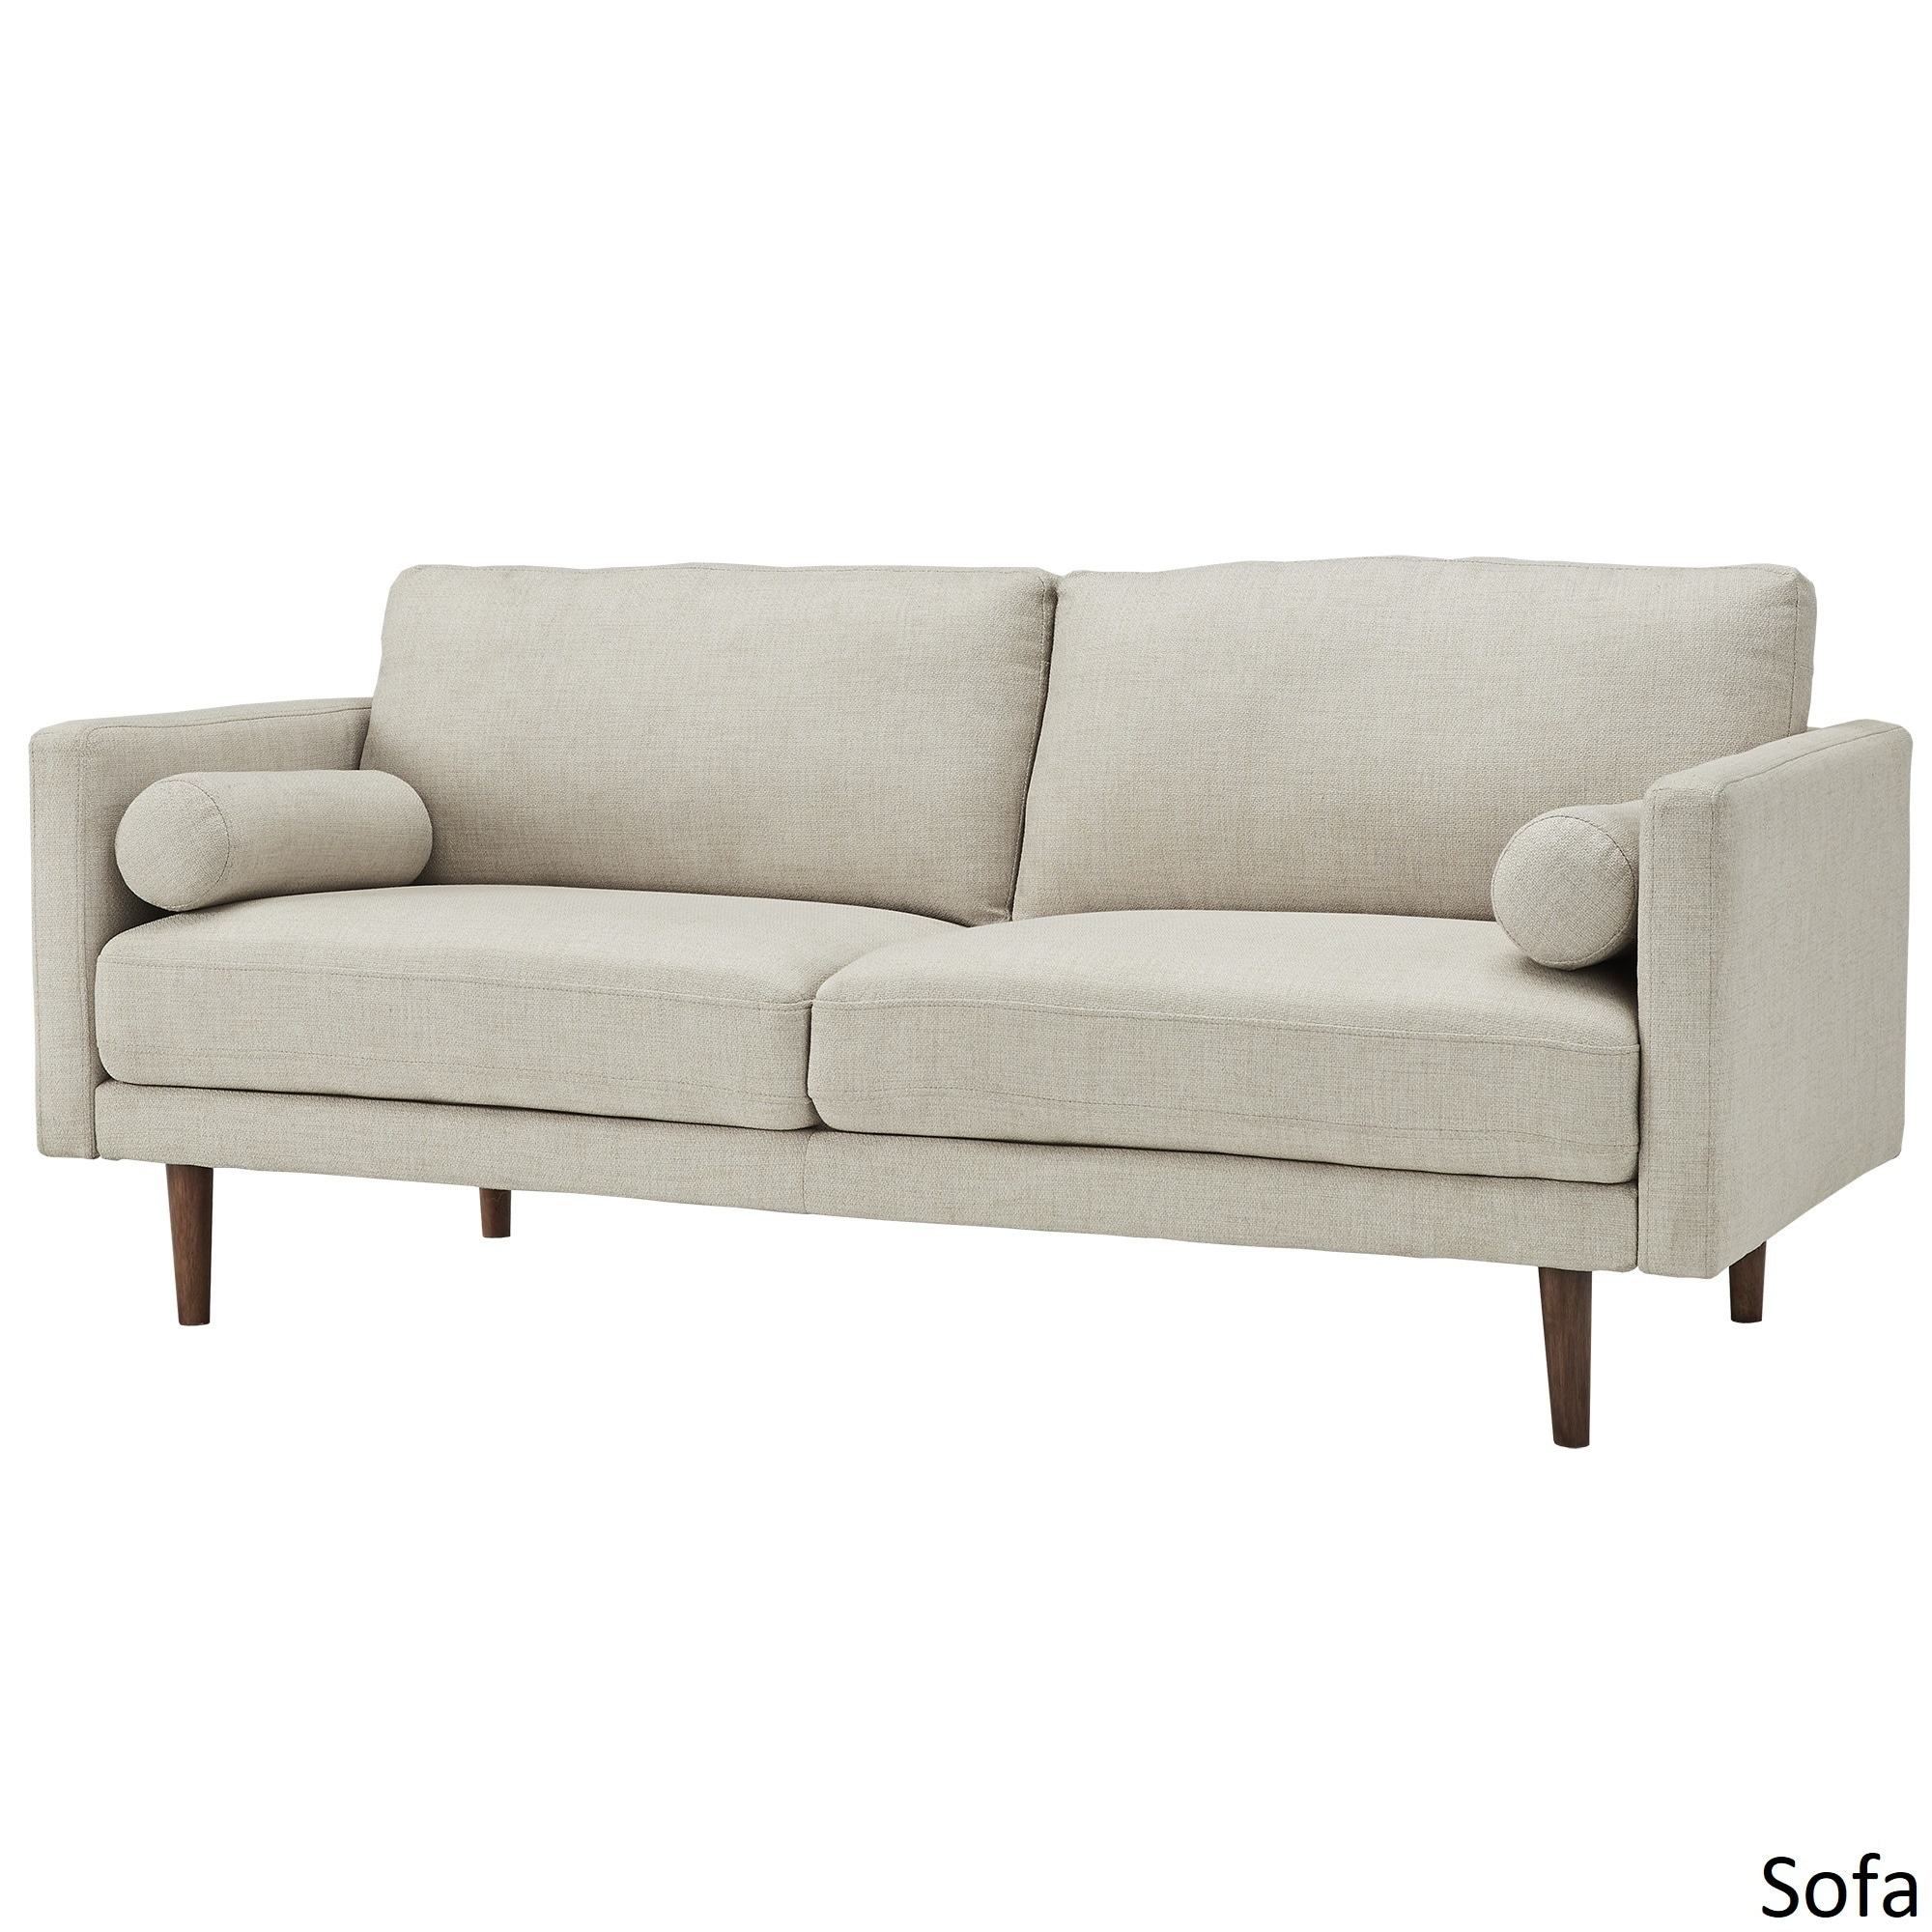 Shop Oana Oatmeal Mid Century Tapered Leg Seating Collection With Pillows  By INSPIRE Q Modern   On Sale   Free Shipping Today   Overstock.com    16741289